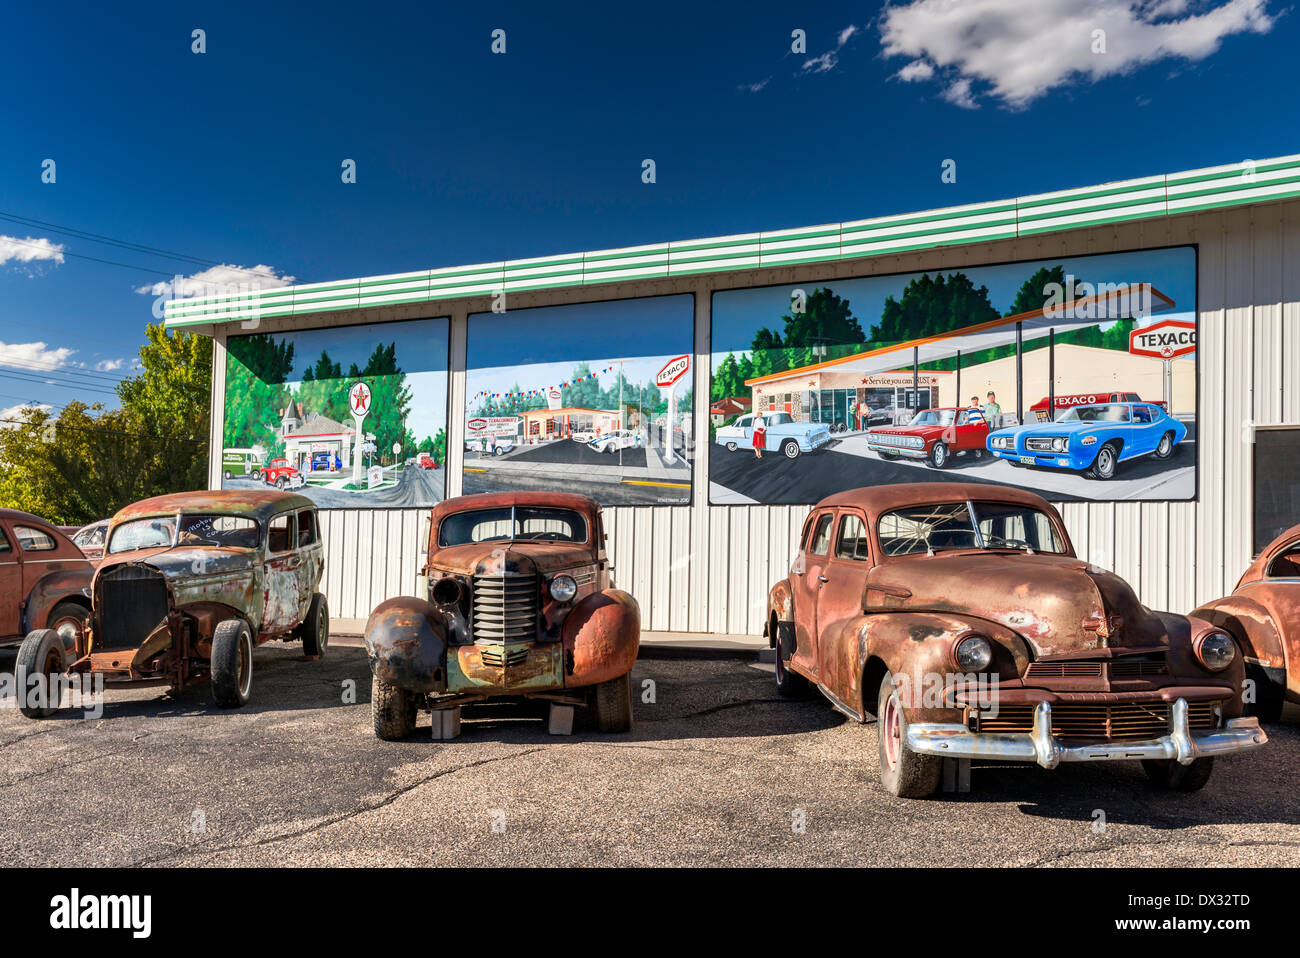 Old, rusted cars for sale, murals behind on wall of service ...